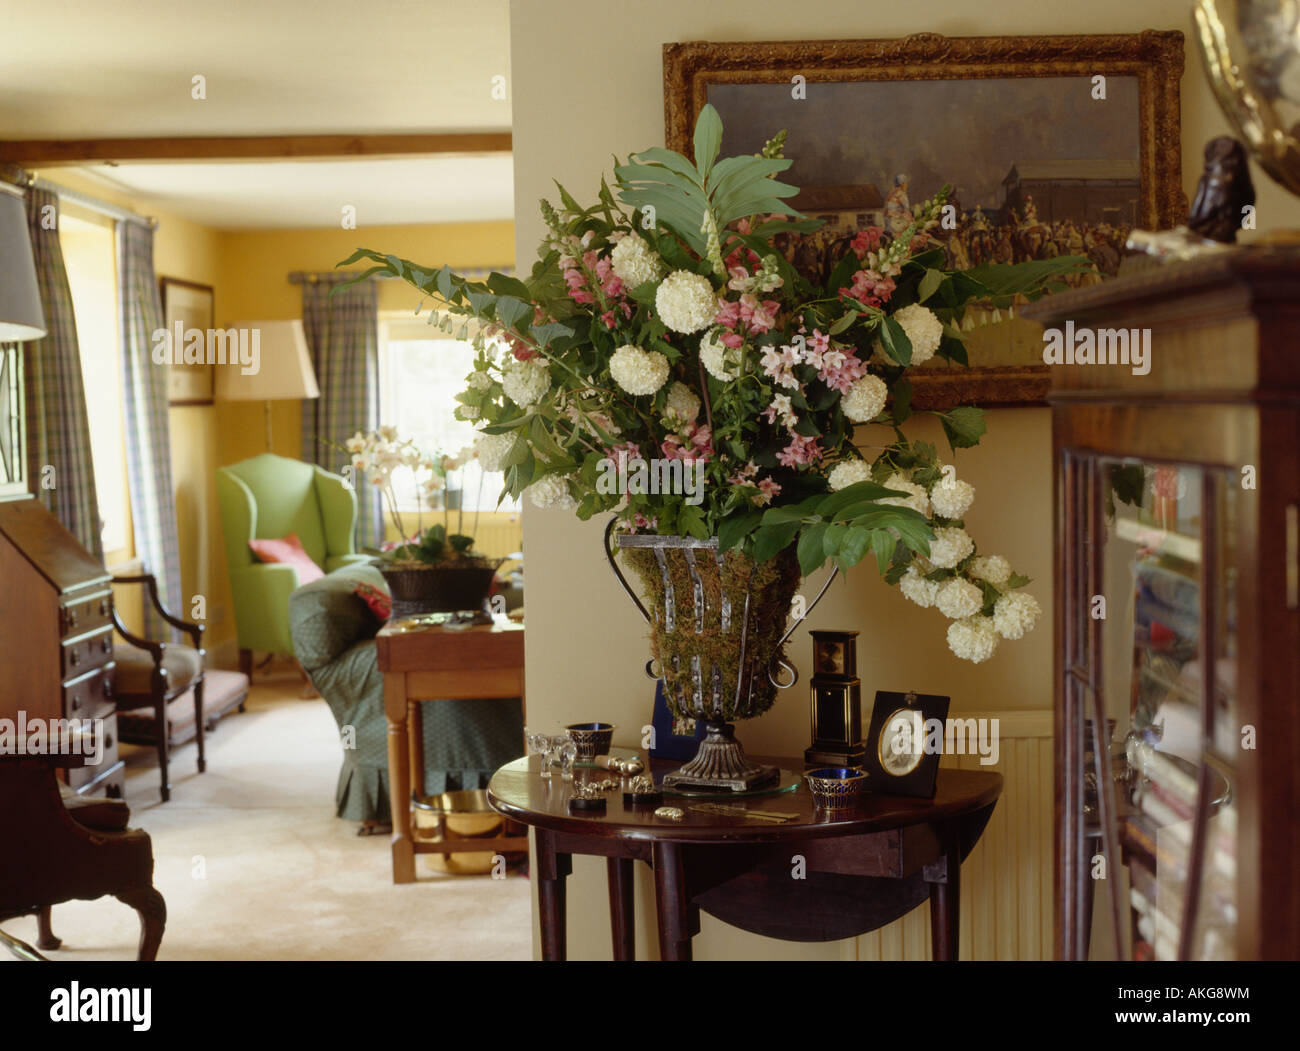 Large Floral Arrangement In Urn On Antique Console Table In Cottage Living  Room Part 21